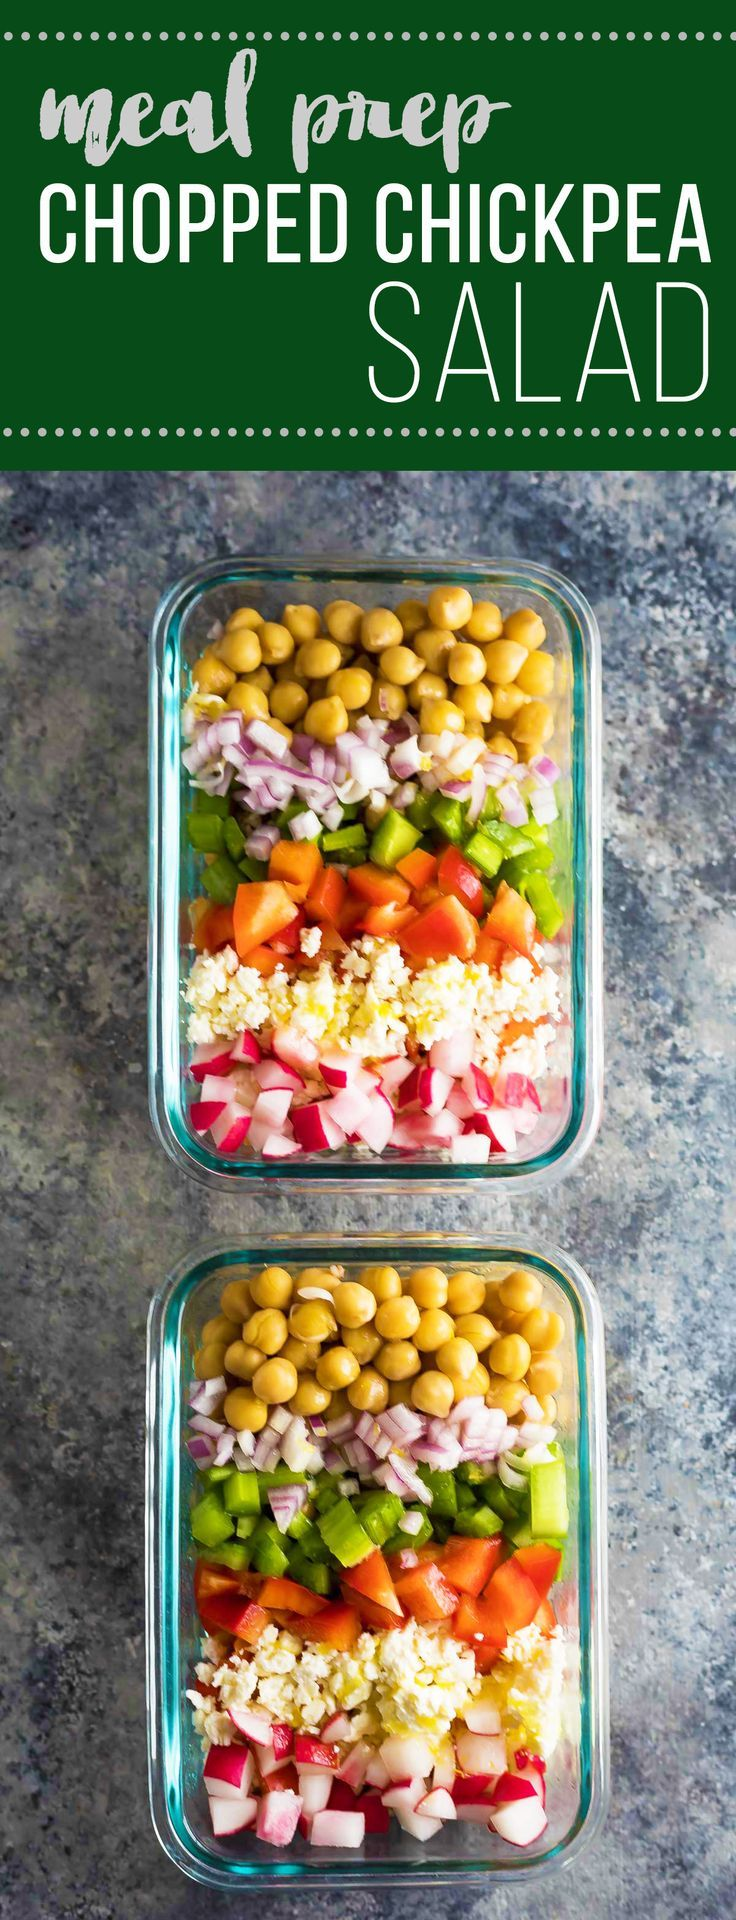 This meal prep chopped chickpea salad can be made on the weekend and enjoyed throughout the week!  Store them in meal prep containers, or as jar salads. (Vegan Recipes Meal Prep)